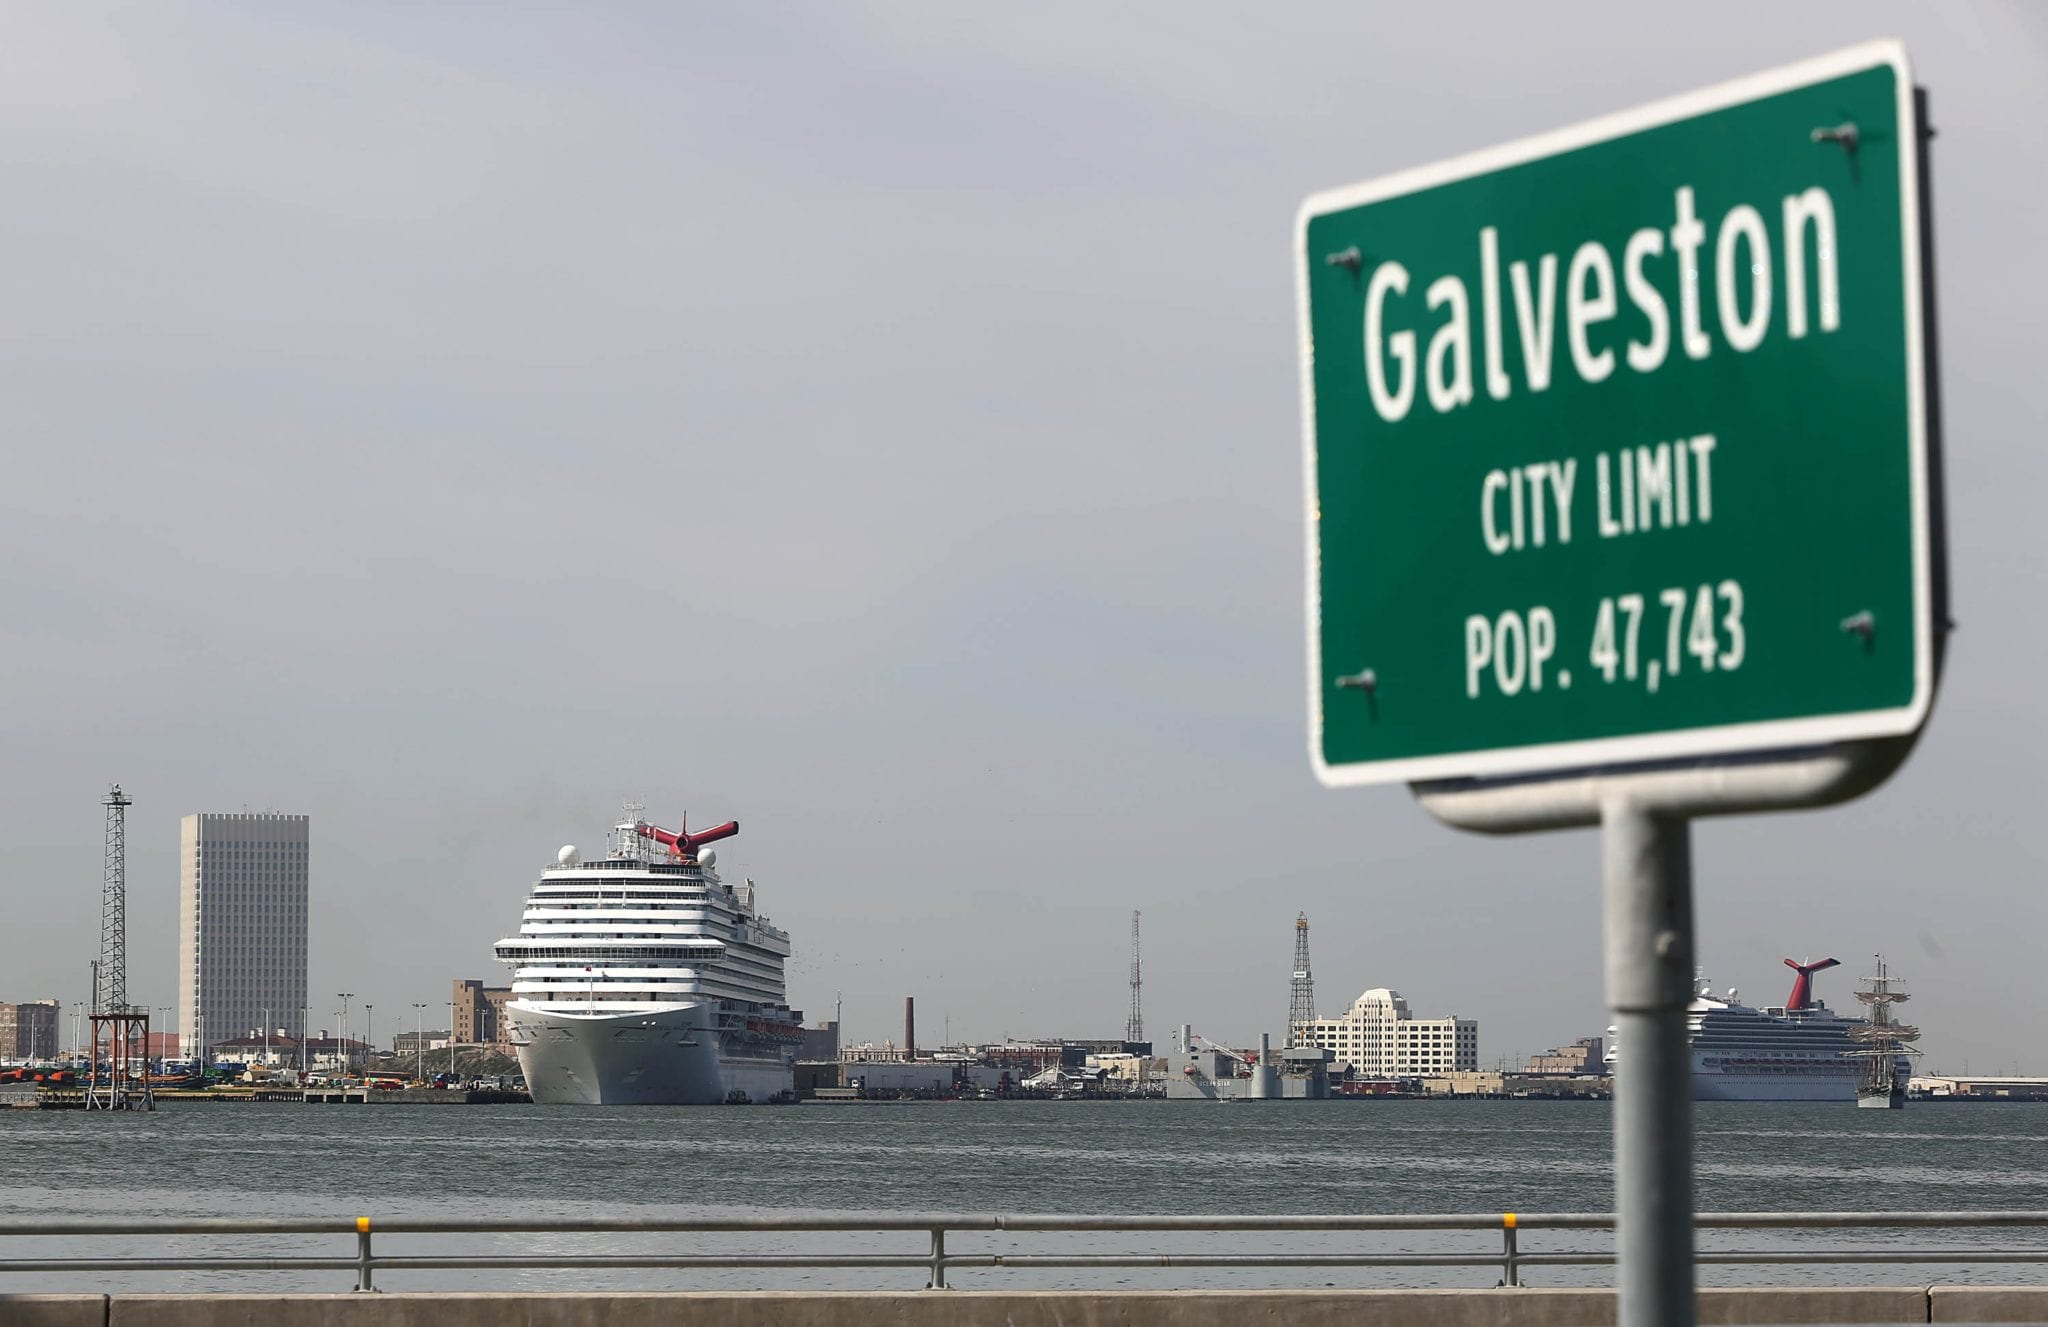 Galveston Cruise Port Transportation